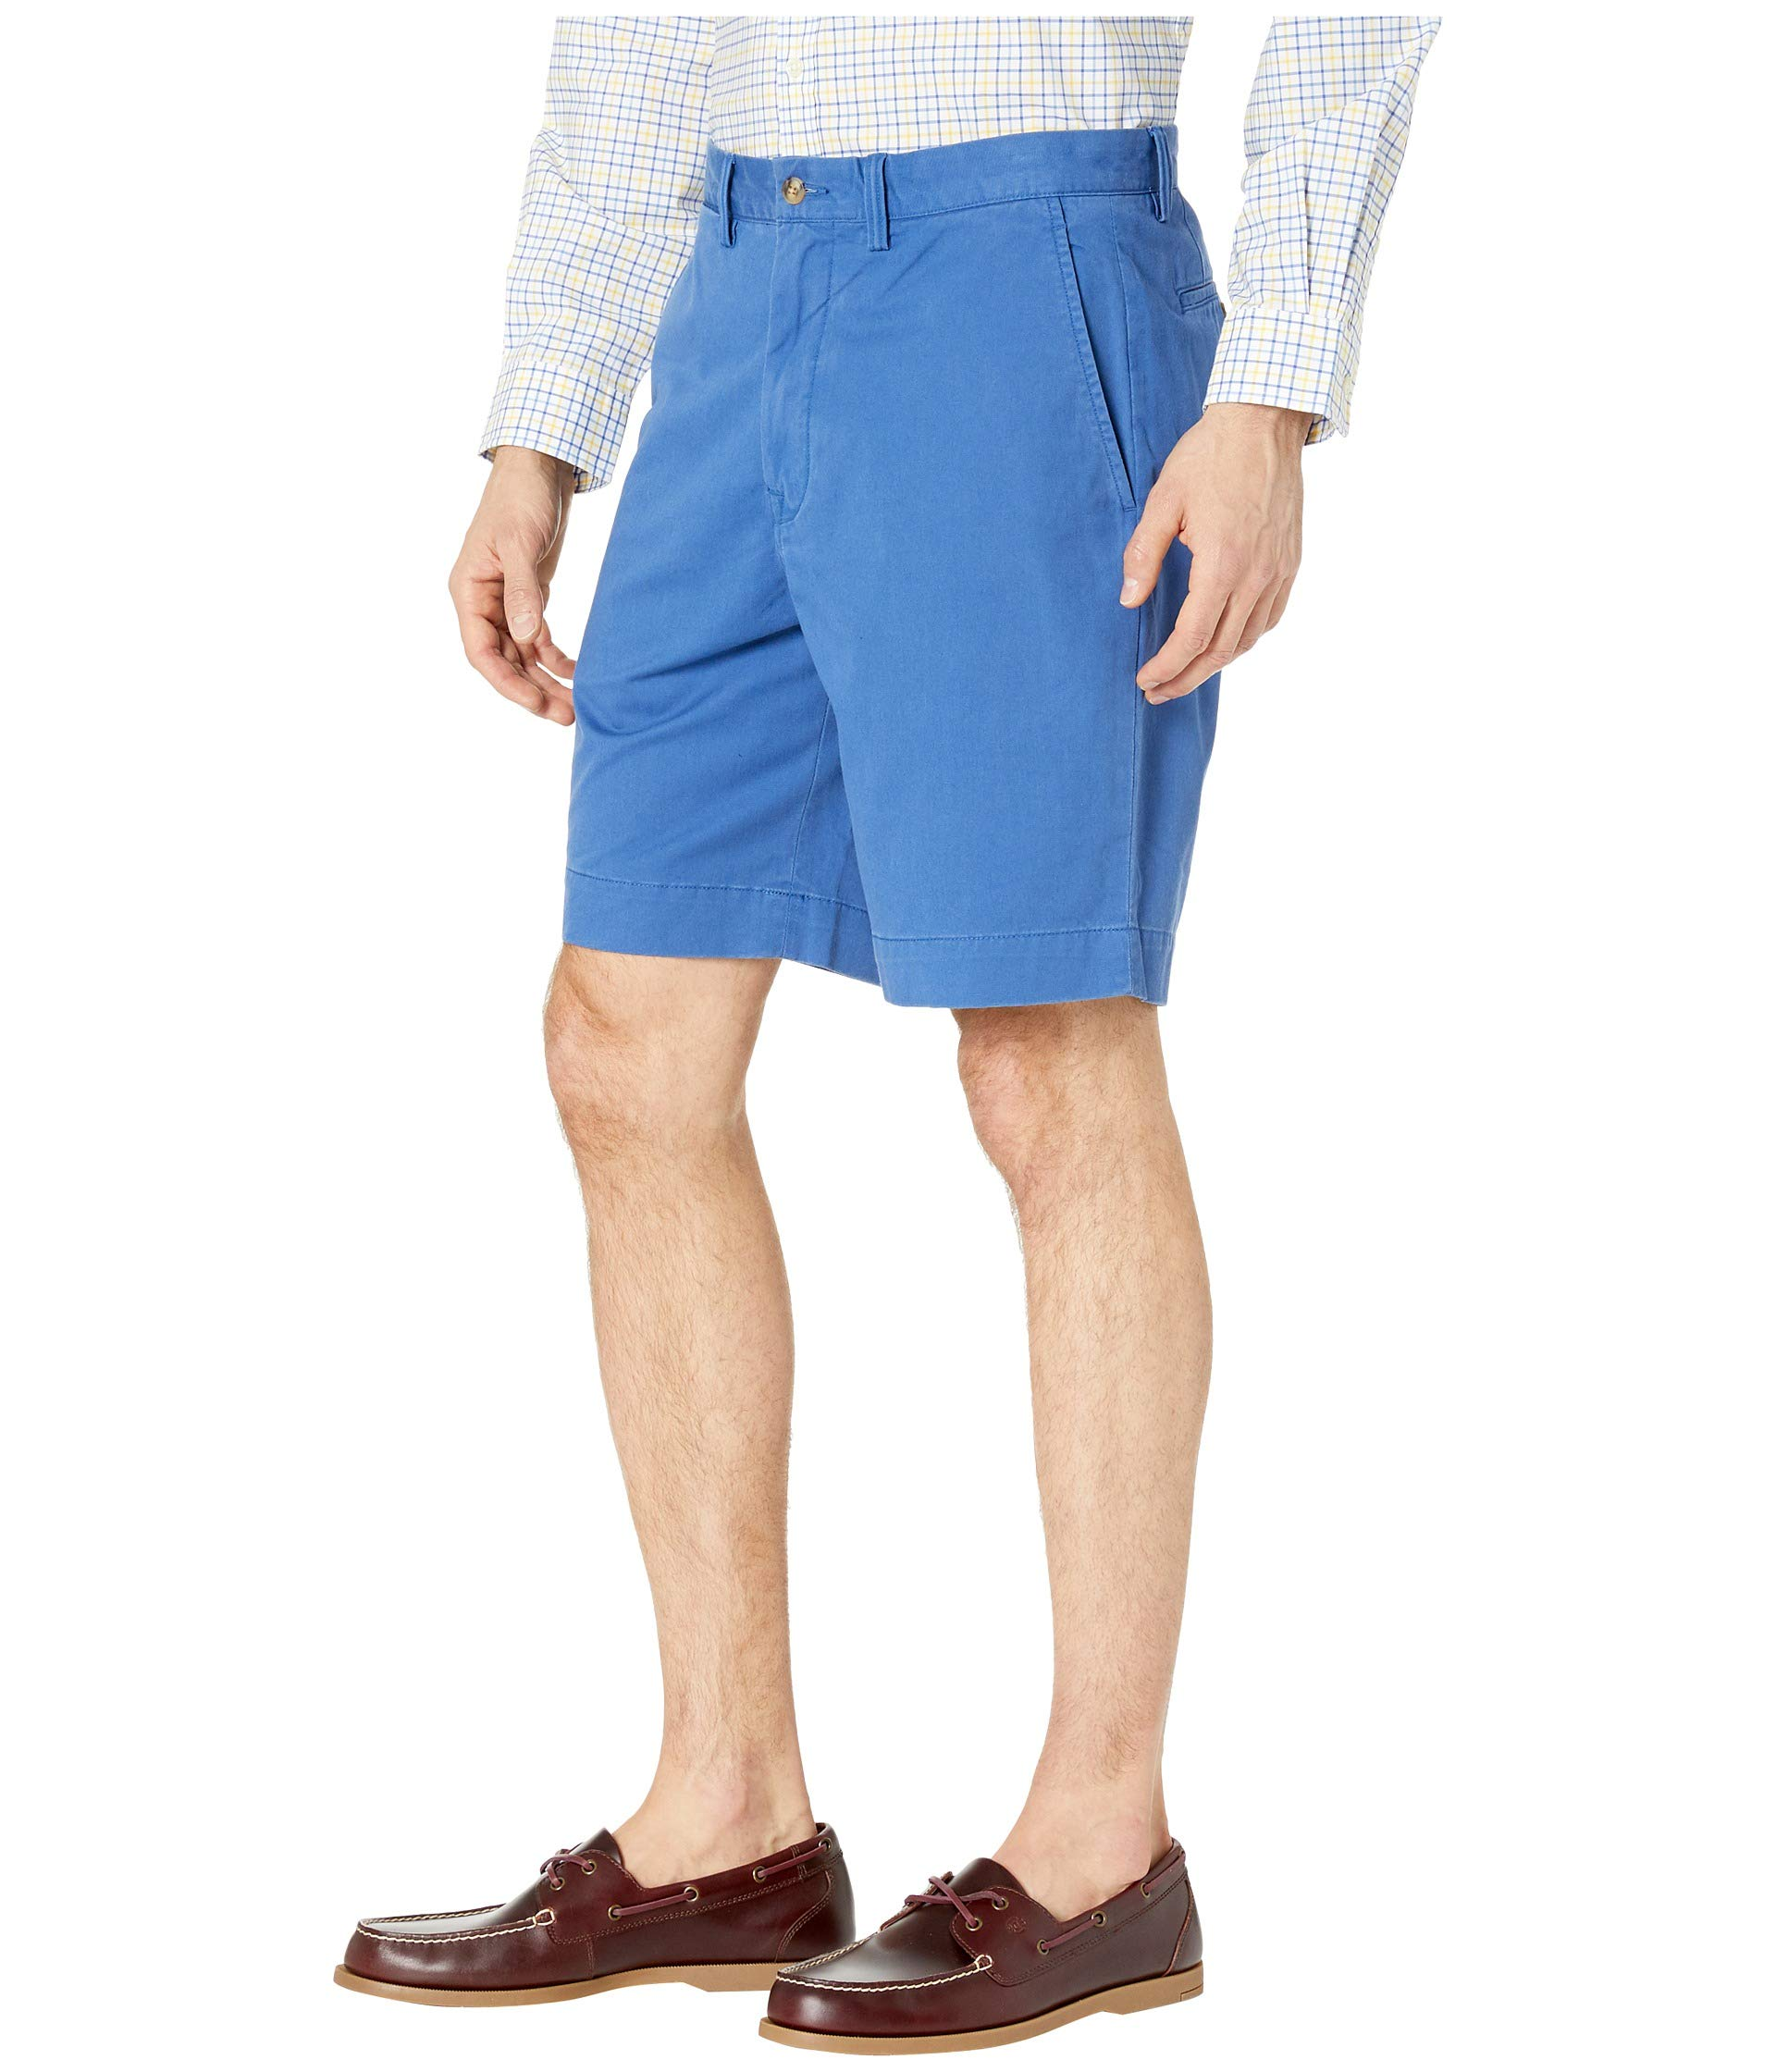 Stretch Polo Classic Royal Lauren Chino Ralph Fit Aged Shorts ggqnE7S1wx